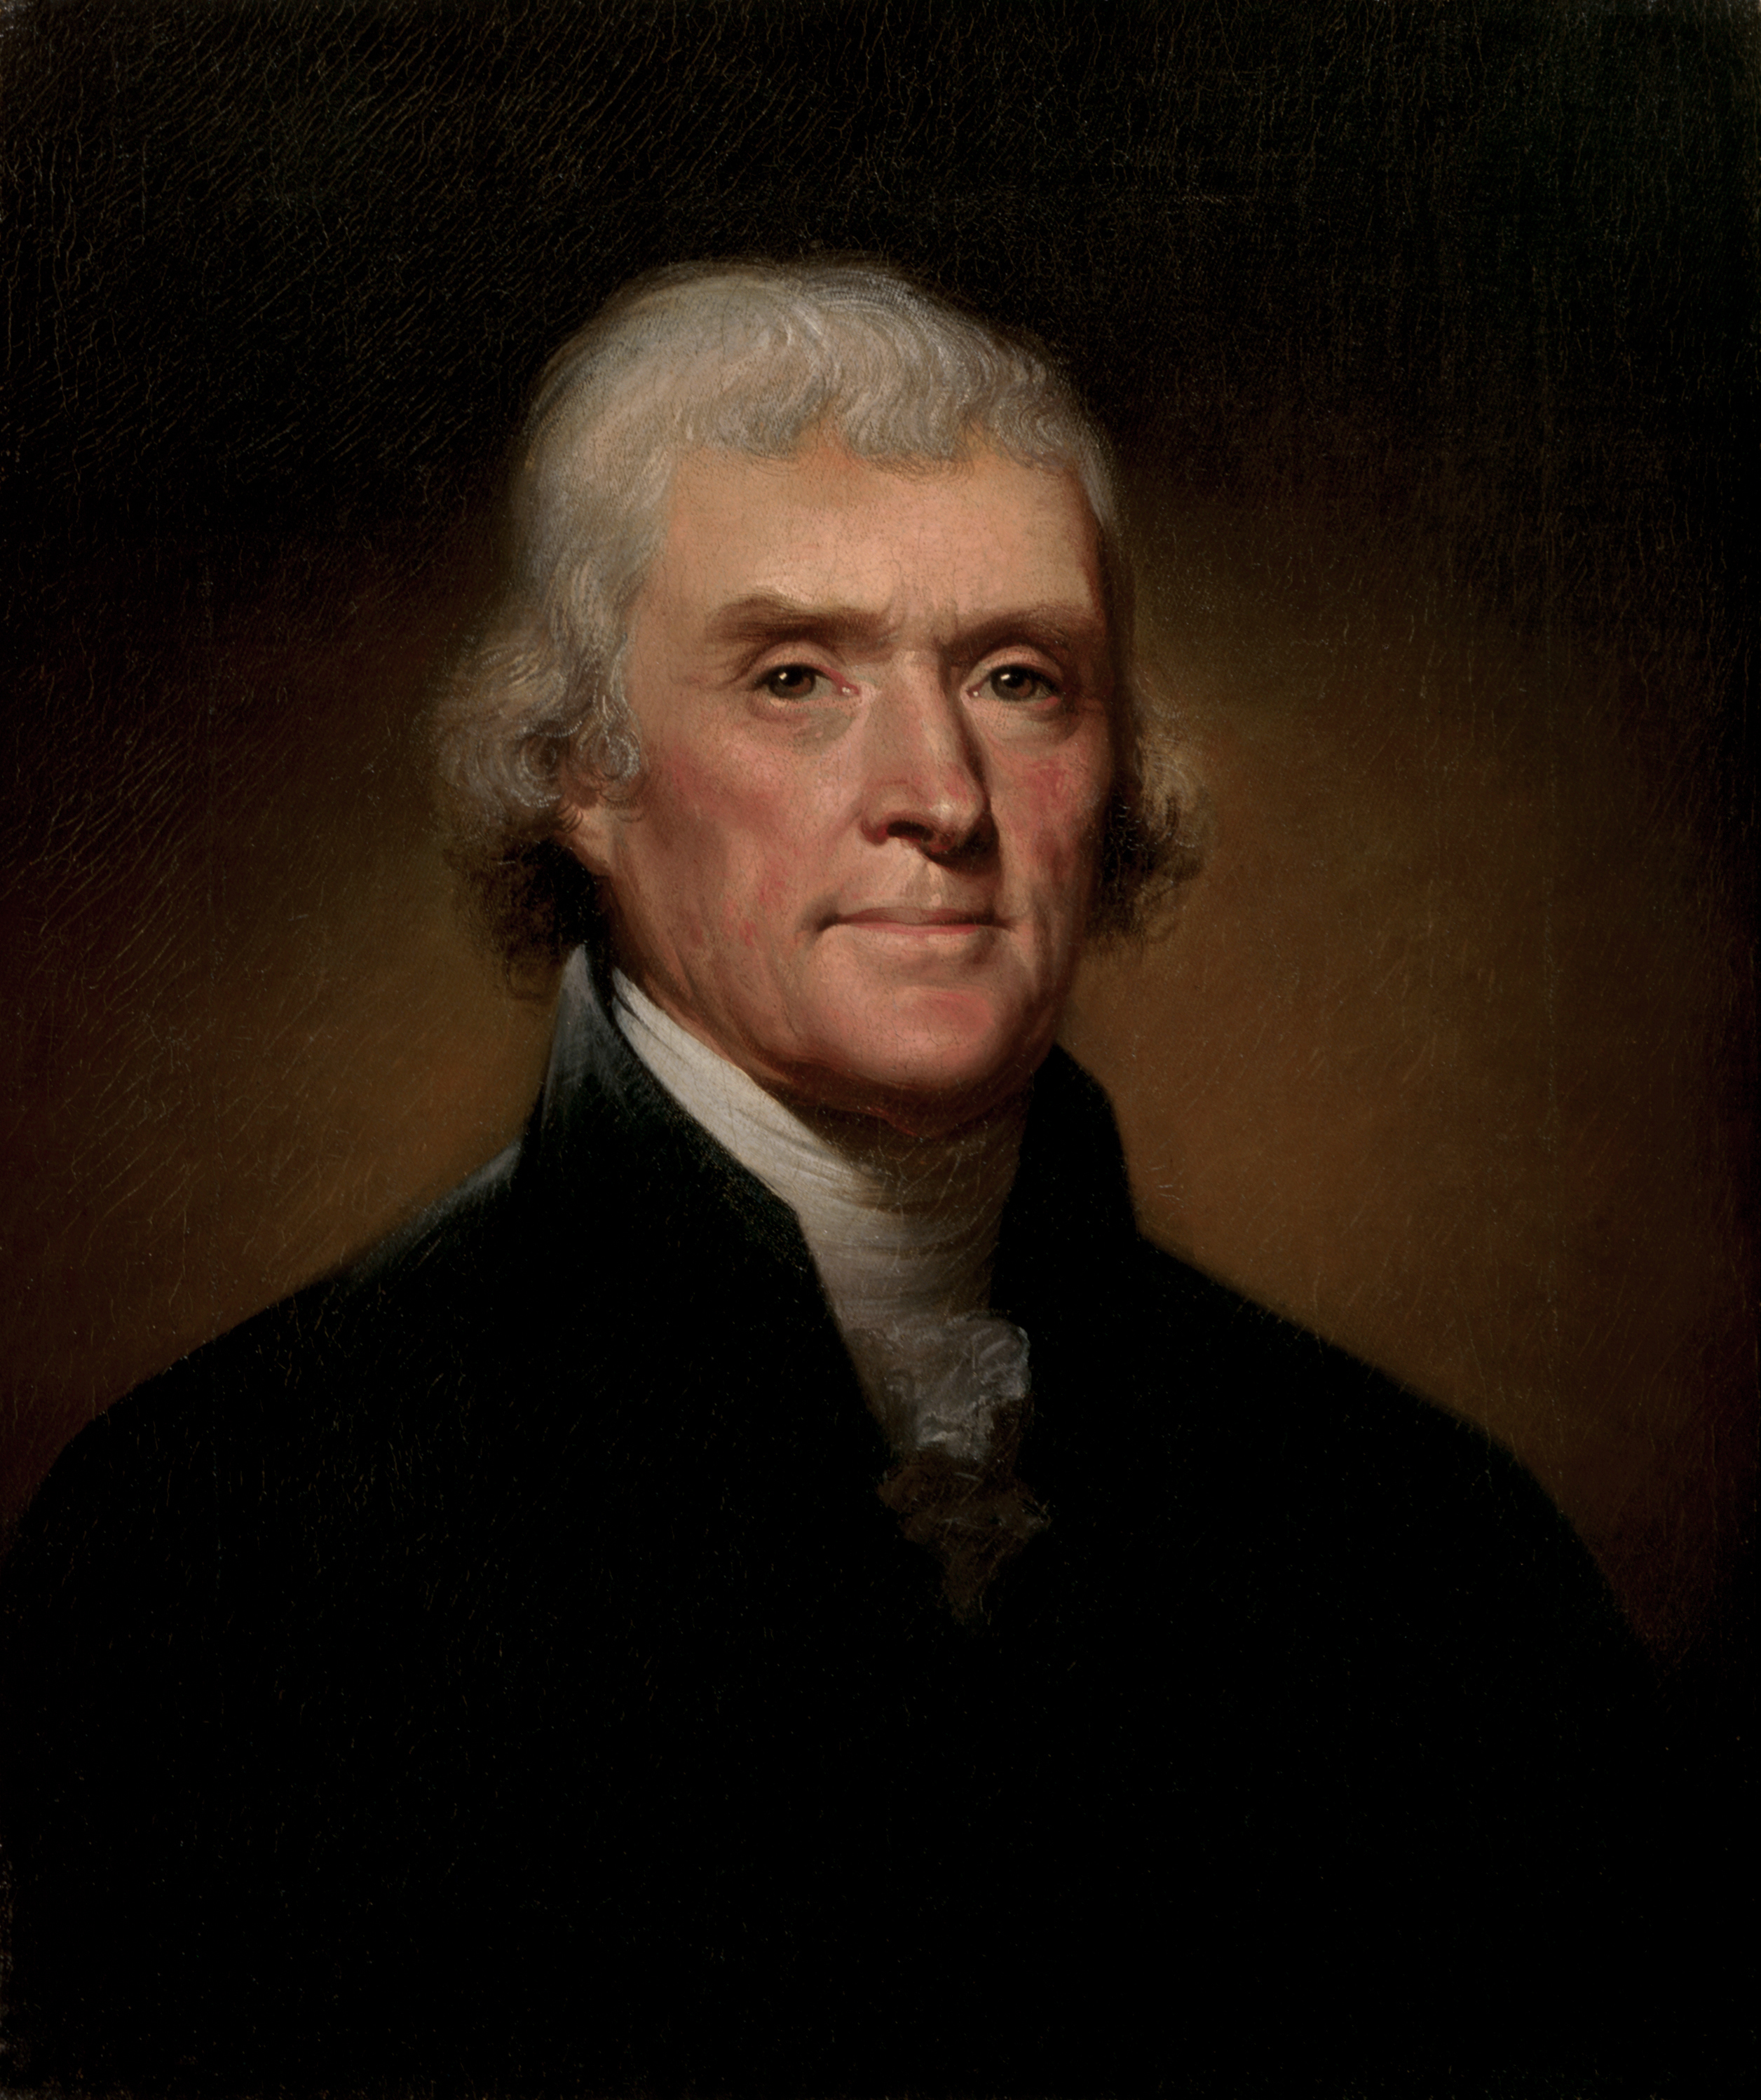 a general evaluation of the presidency of thomas jefferson While thomas jefferson is one of the most well-known american presidents, the quality of his leadership is debated by some scholars some of jefferson's greatest attempts as a leader ended.